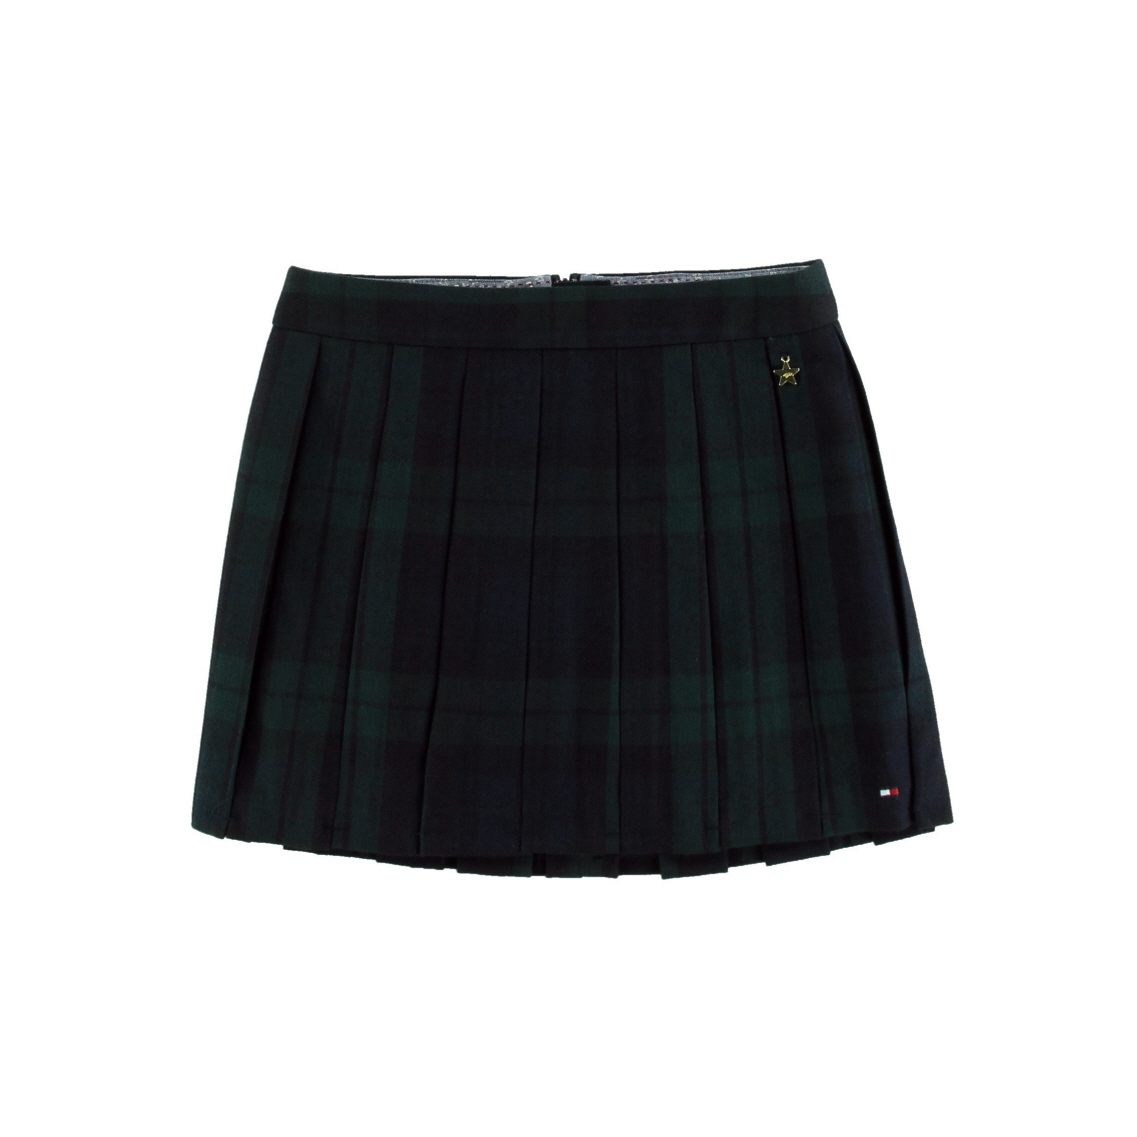 JAPAN GIRLS PLEATED SKIRT